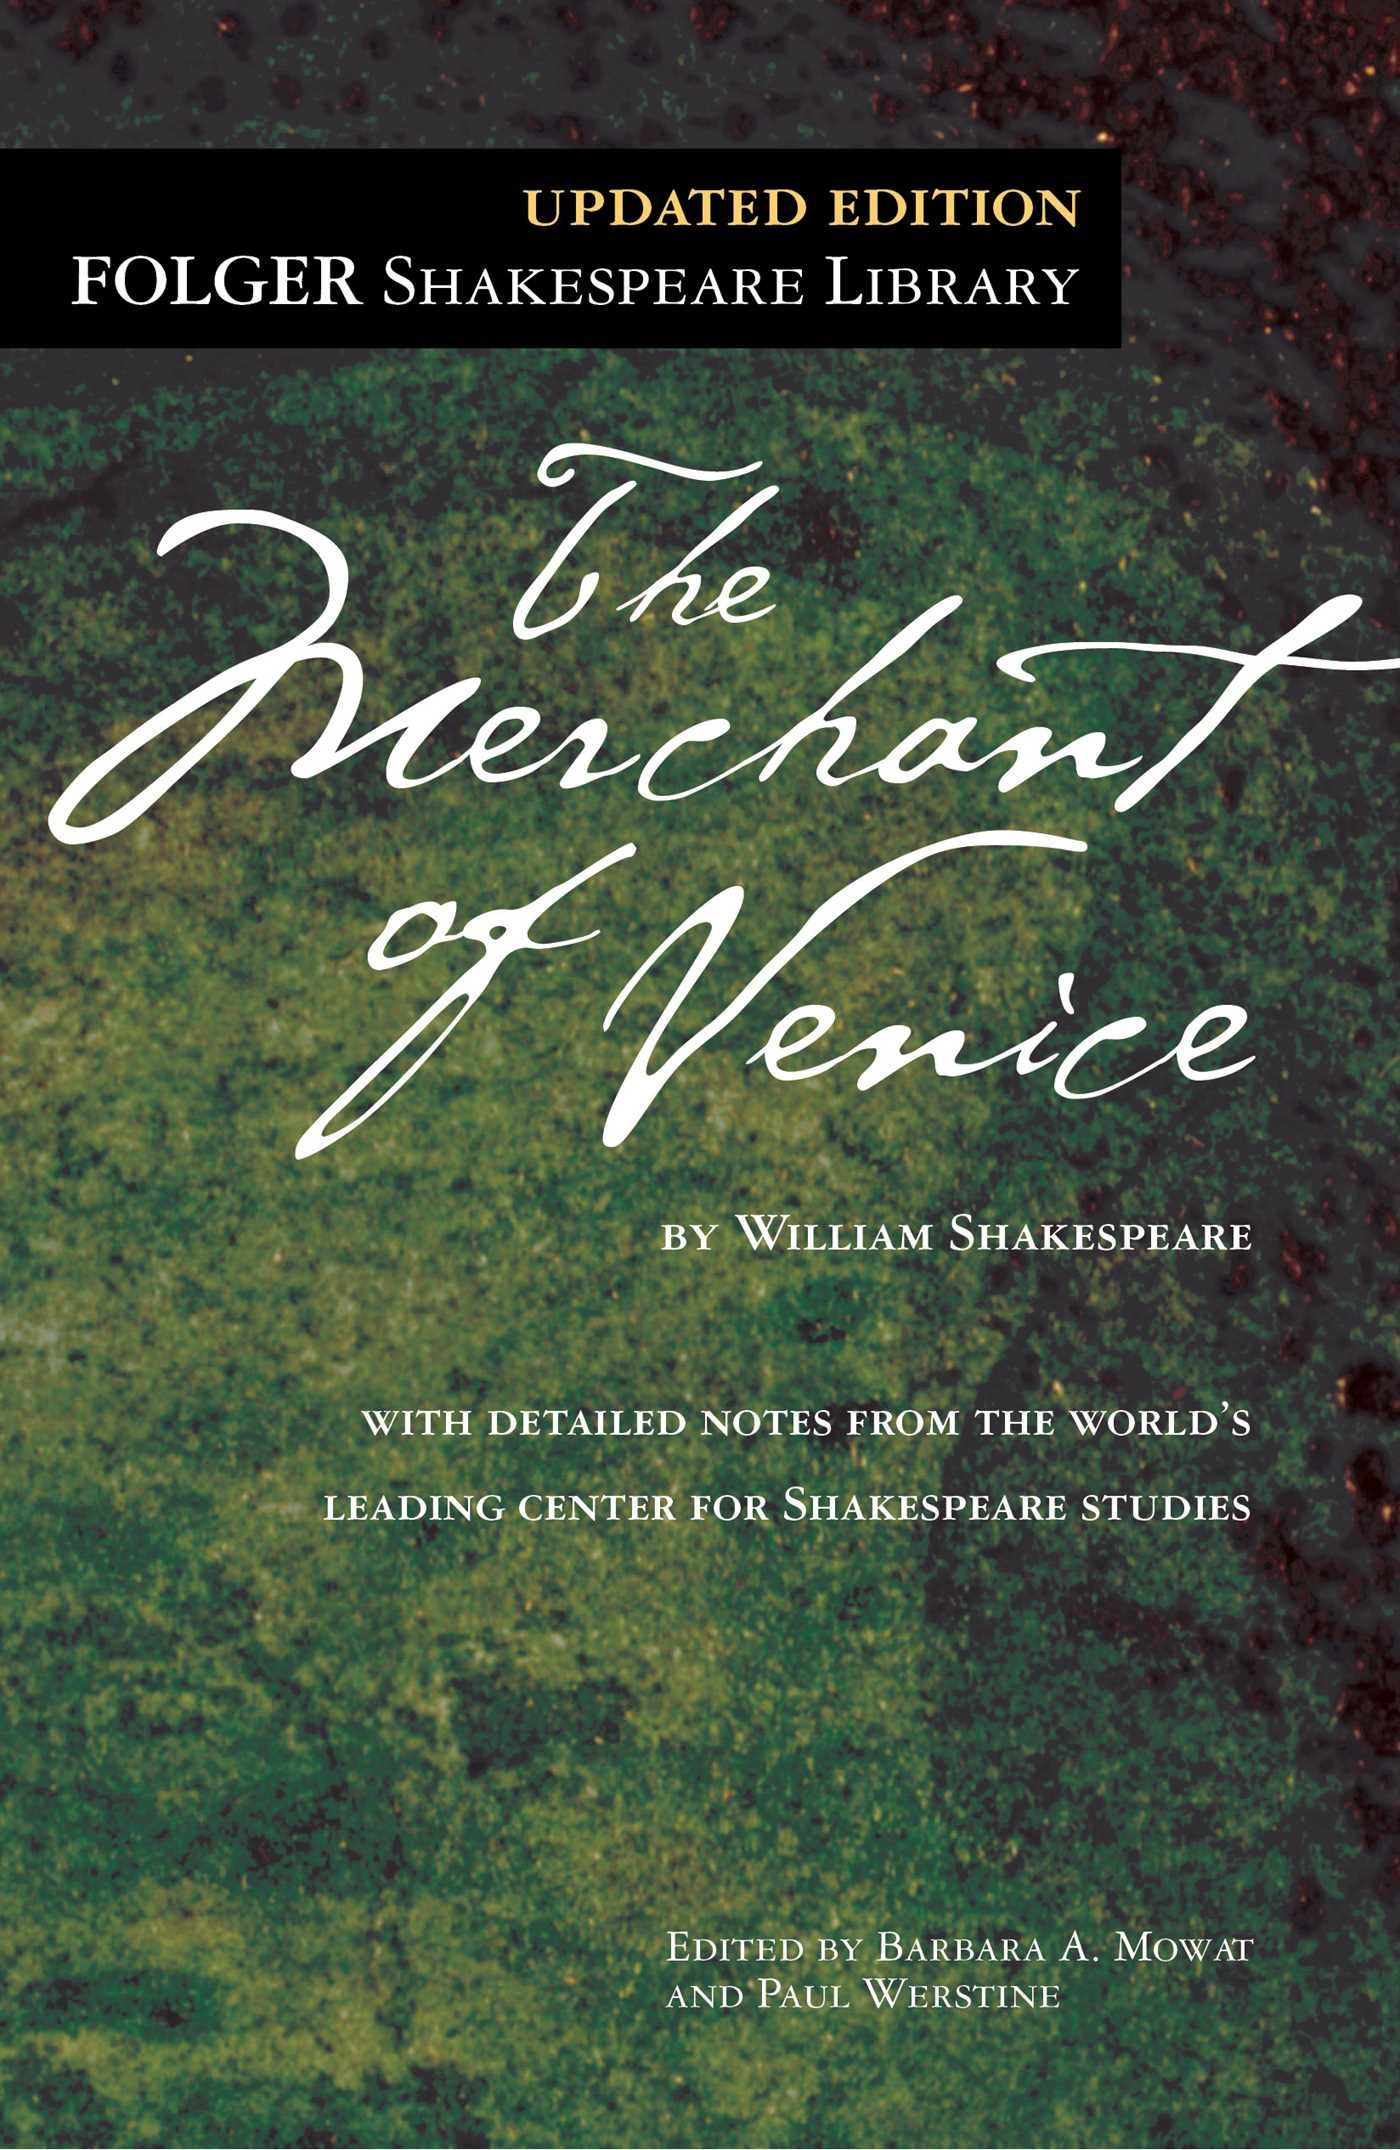 images about Shakespeare on Pinterest   The merchant of venice  Alan  lee and Twelfth night Alib